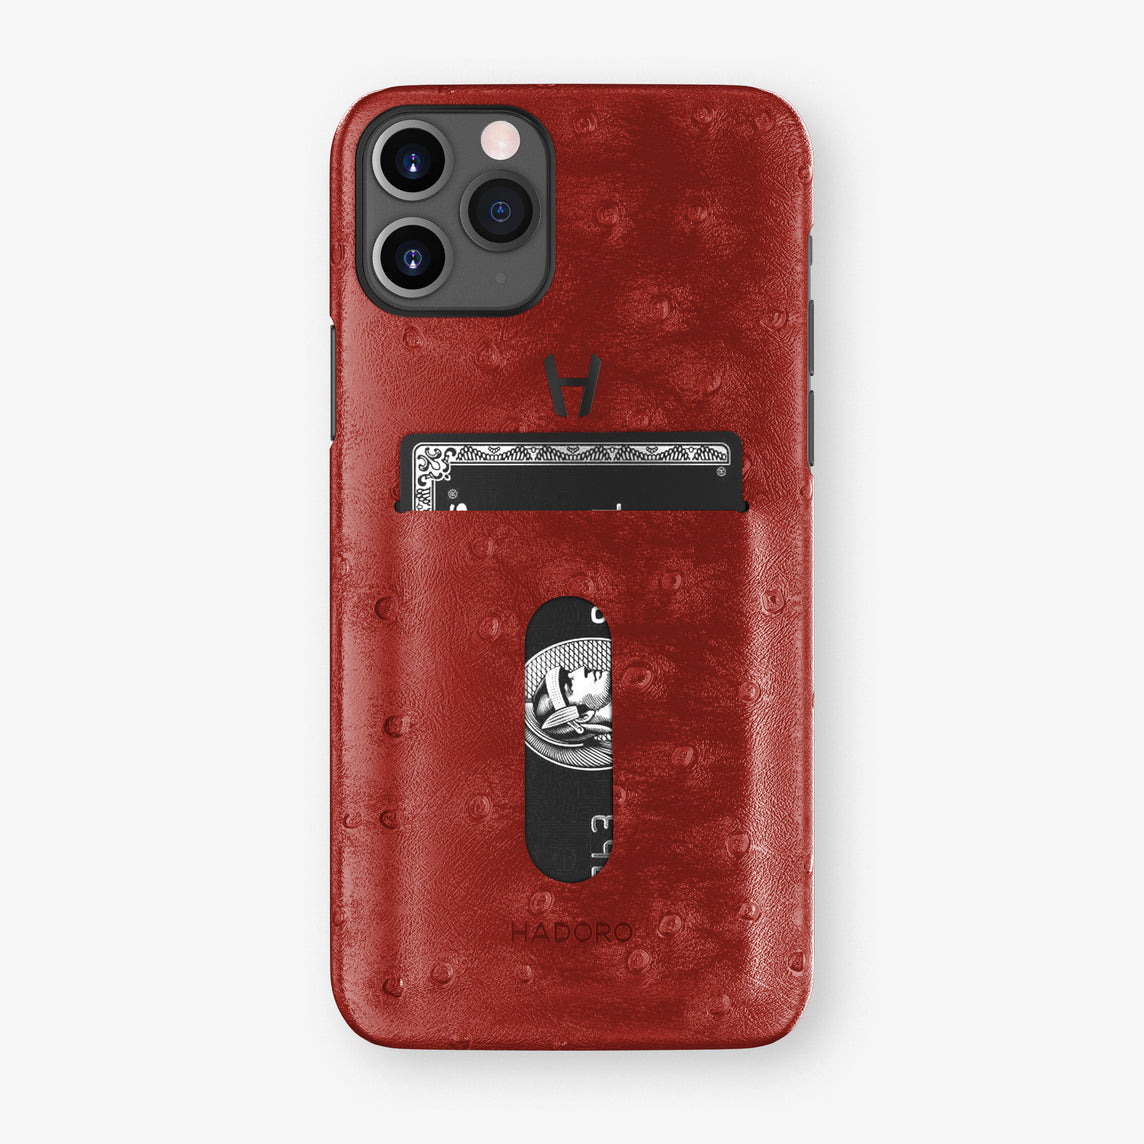 Ostrich Card Holder Case iPhone 11 Pro | Red - Black